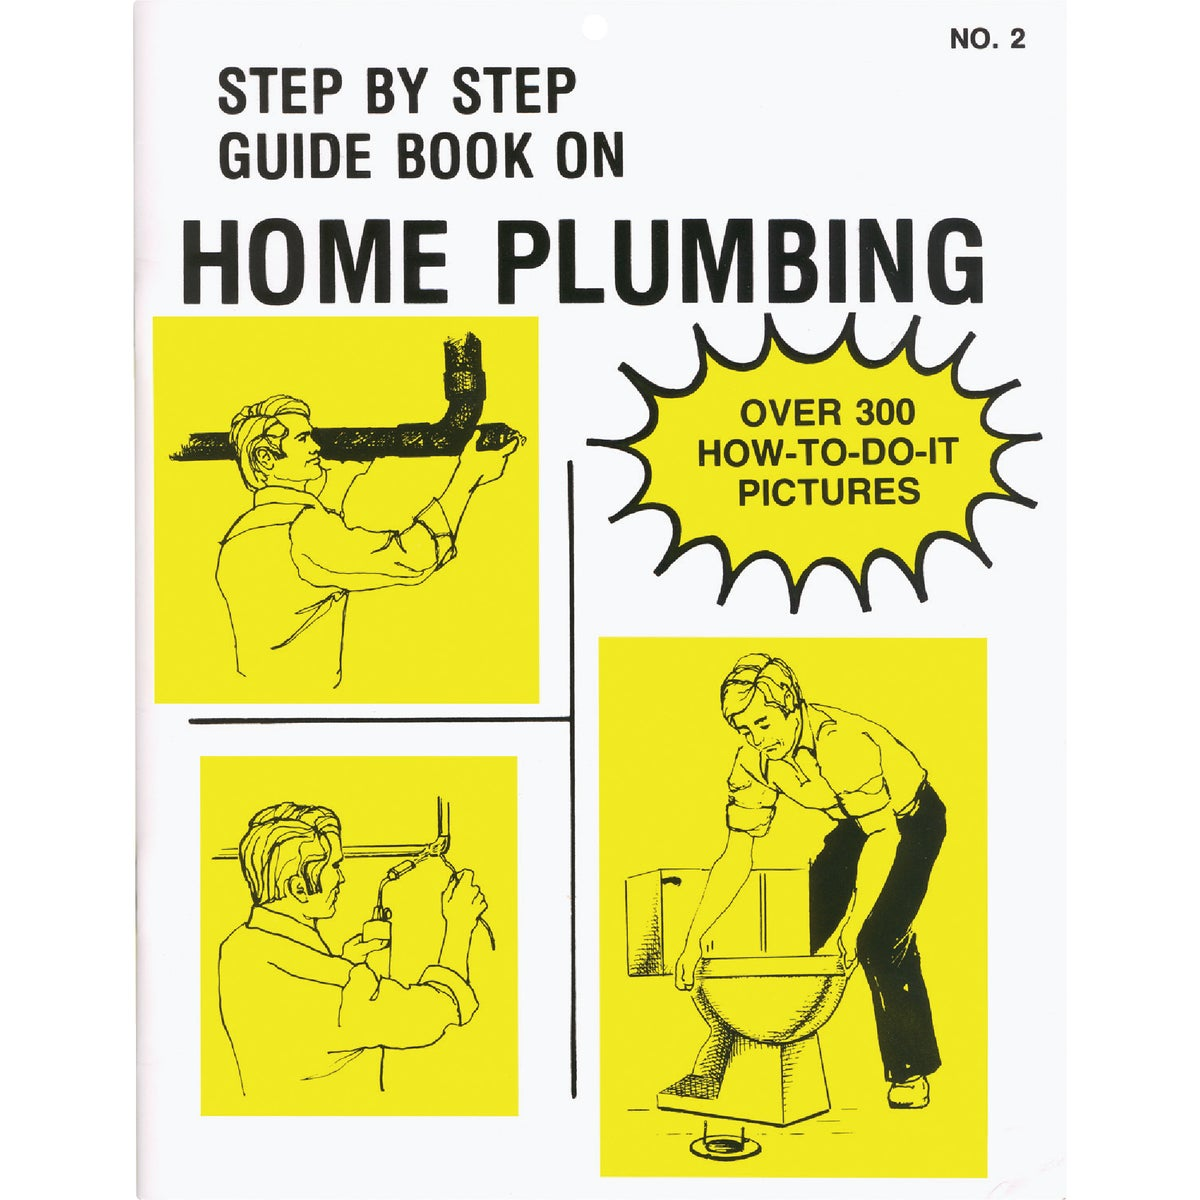 Step-By-Step Guide Book HOME PLUMBING BOOK 2